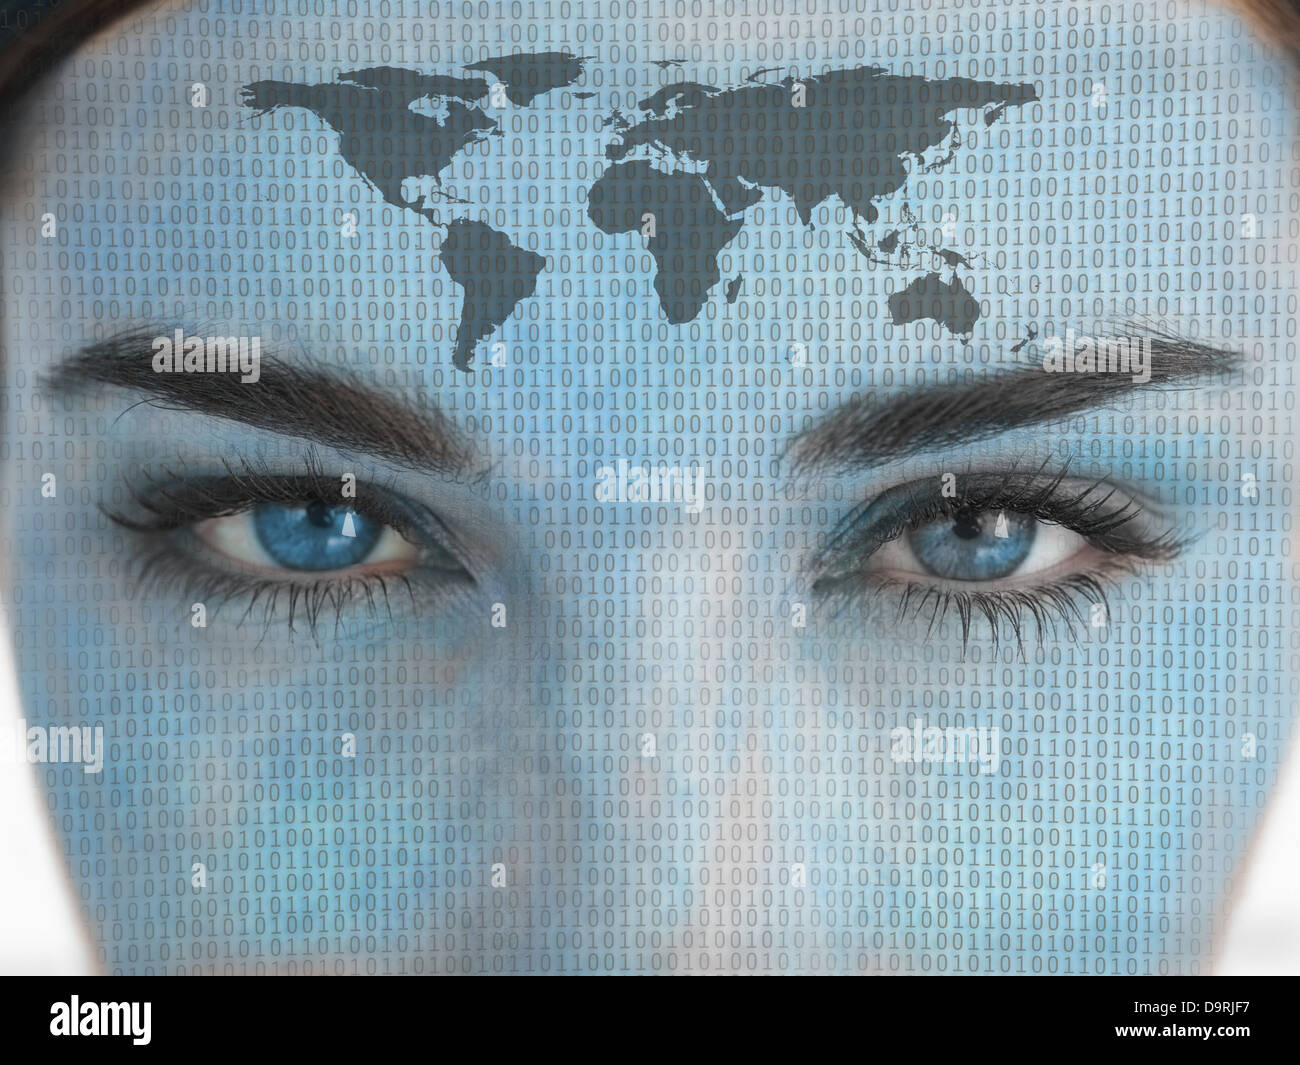 Attractive blue eyed woman with binary coding and map on face - Stock Image